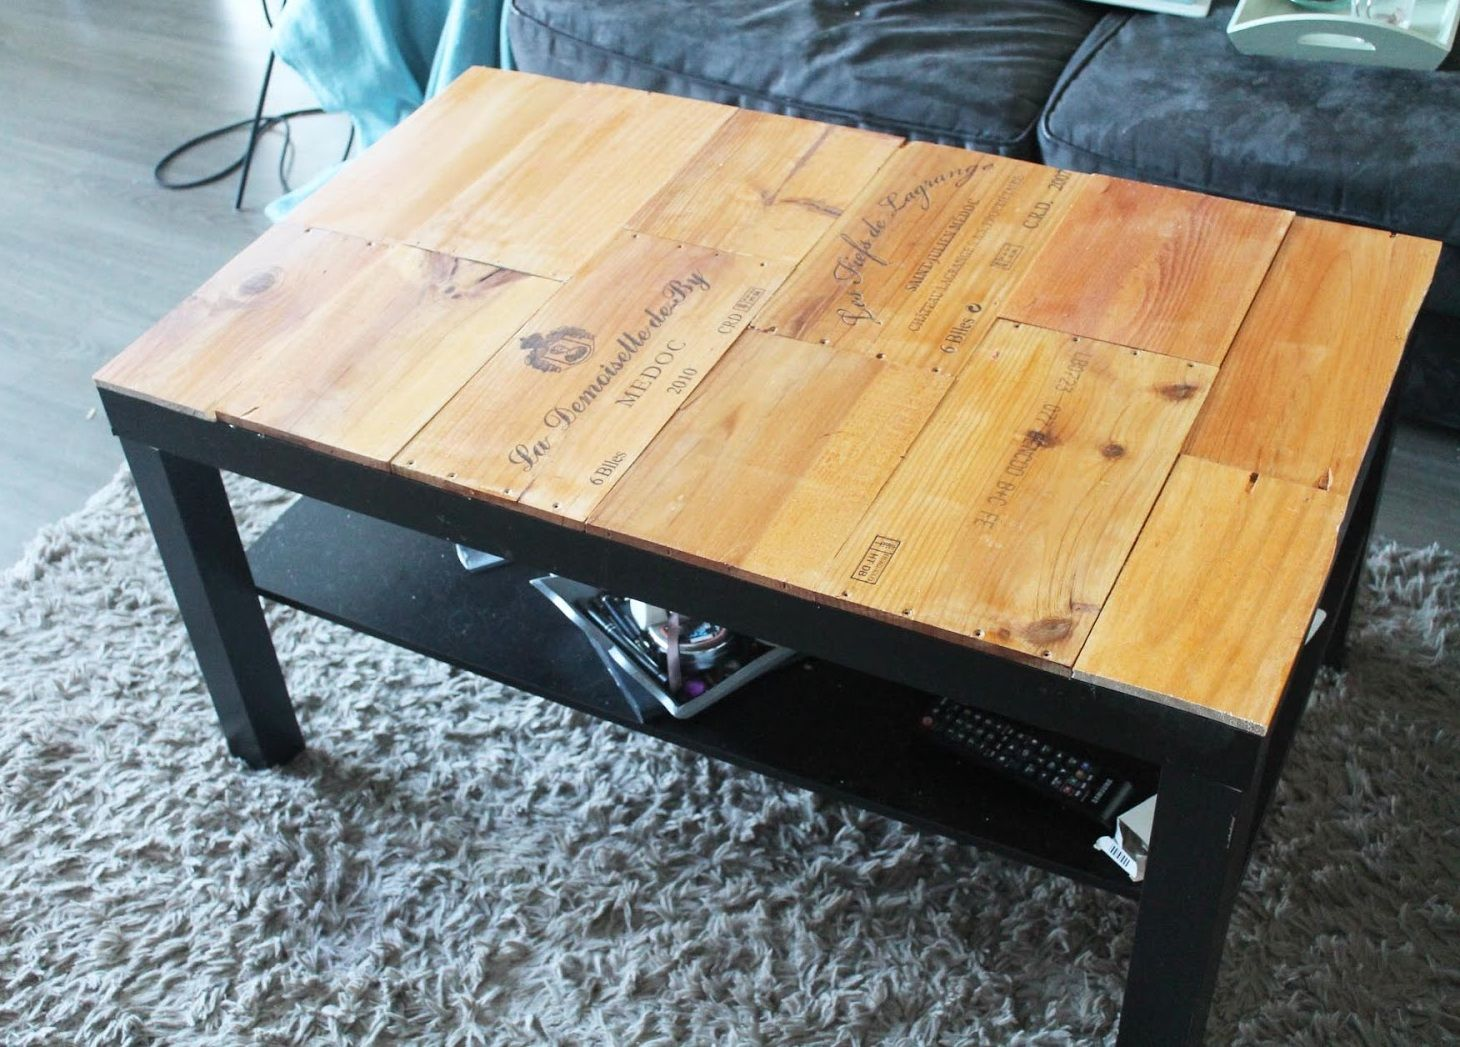 Tuto Customiser Une Table Basse Avec Des Caisses De Vin Customiser Table Customiser Table Basse Table Basse